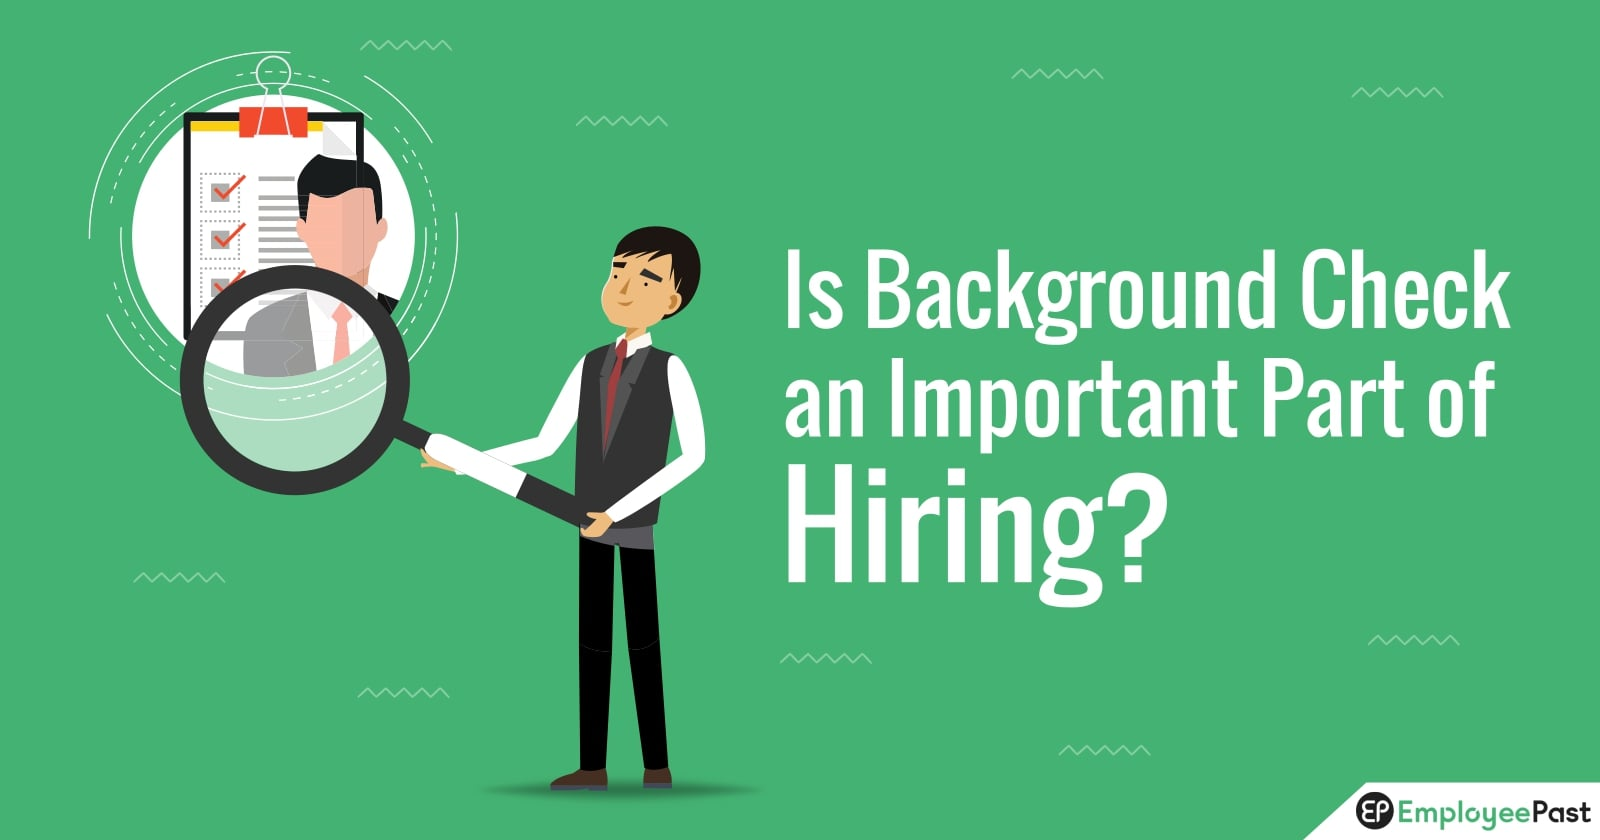 Is Background Check an Important Part of Hiring?